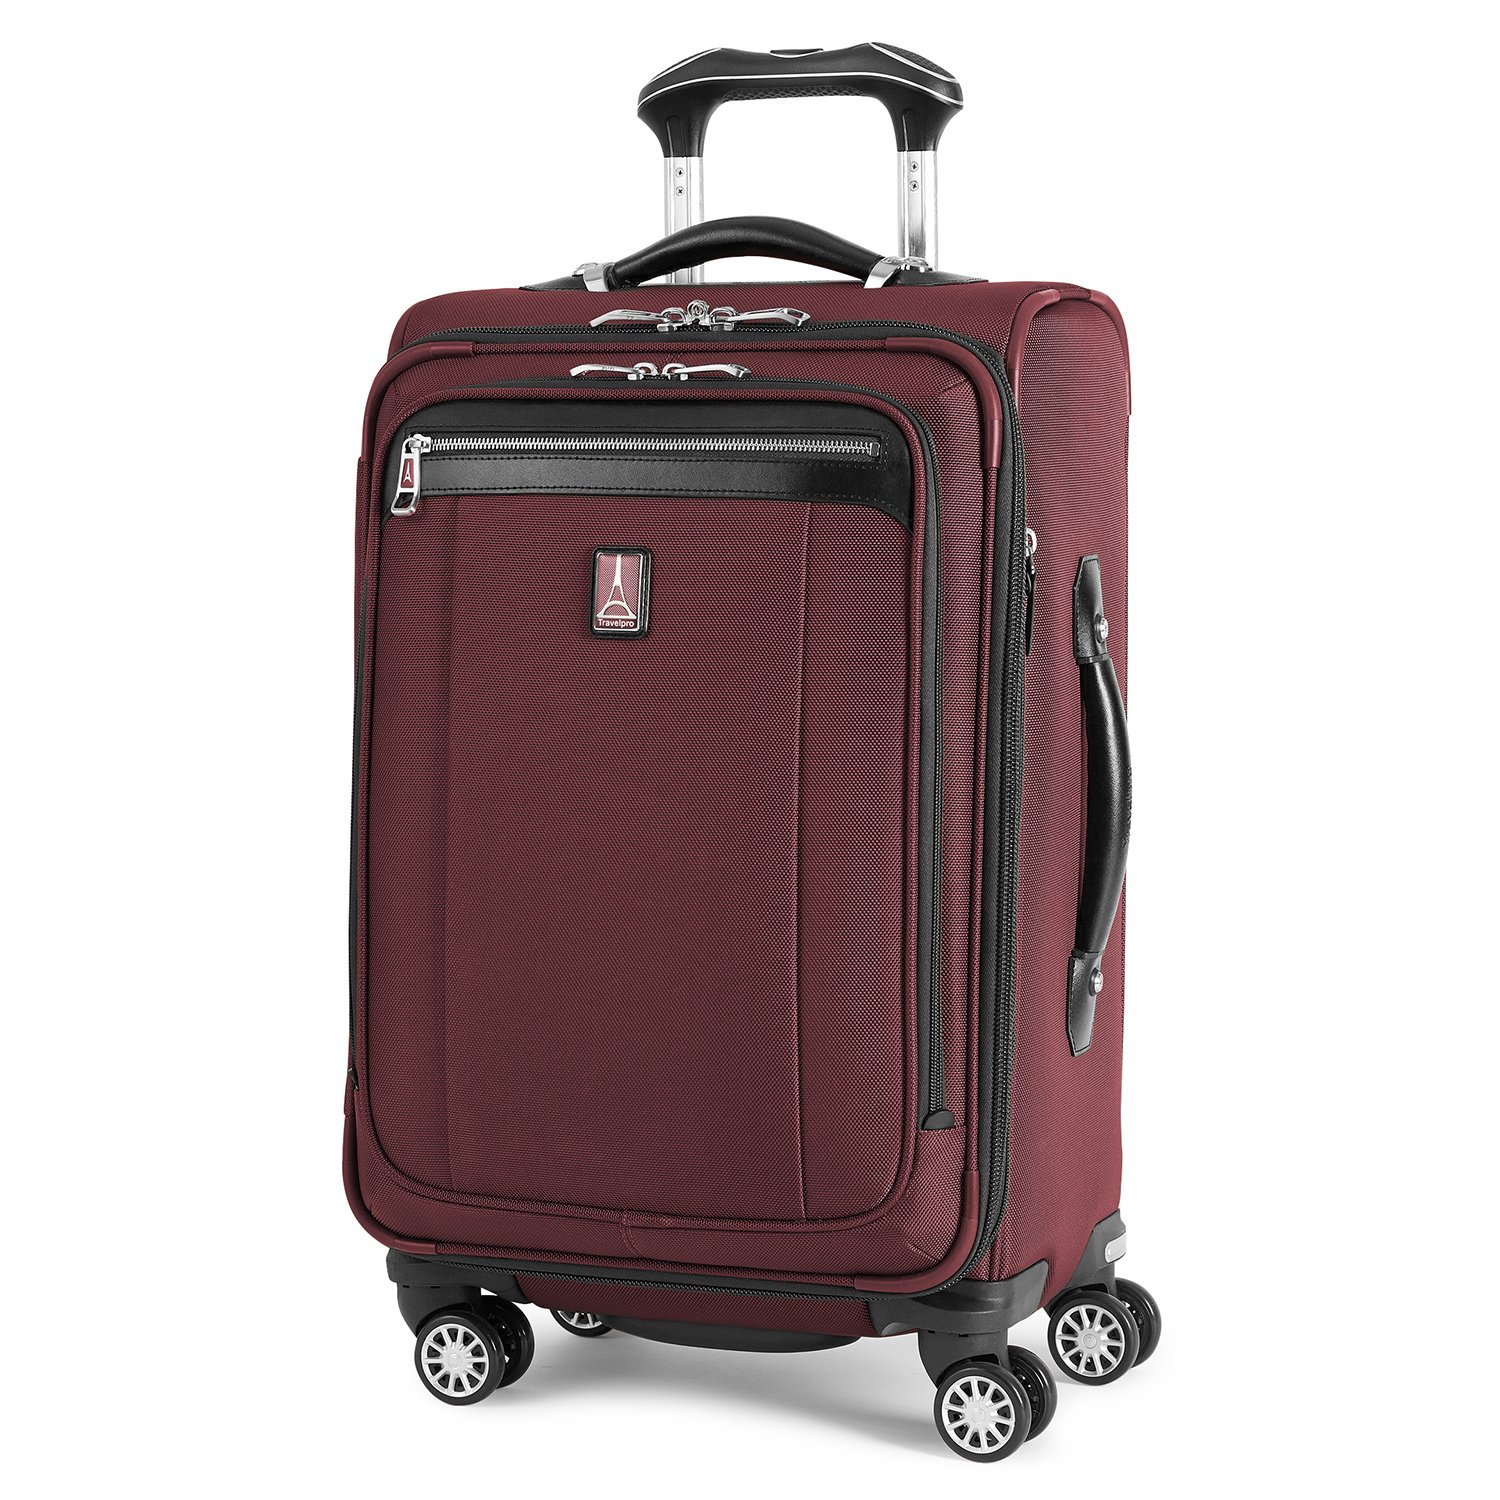 Travelpro PlatinumMagna2 Carry-On Expandable Spinner Suiter Suitcase, 21-in., Marsella Red